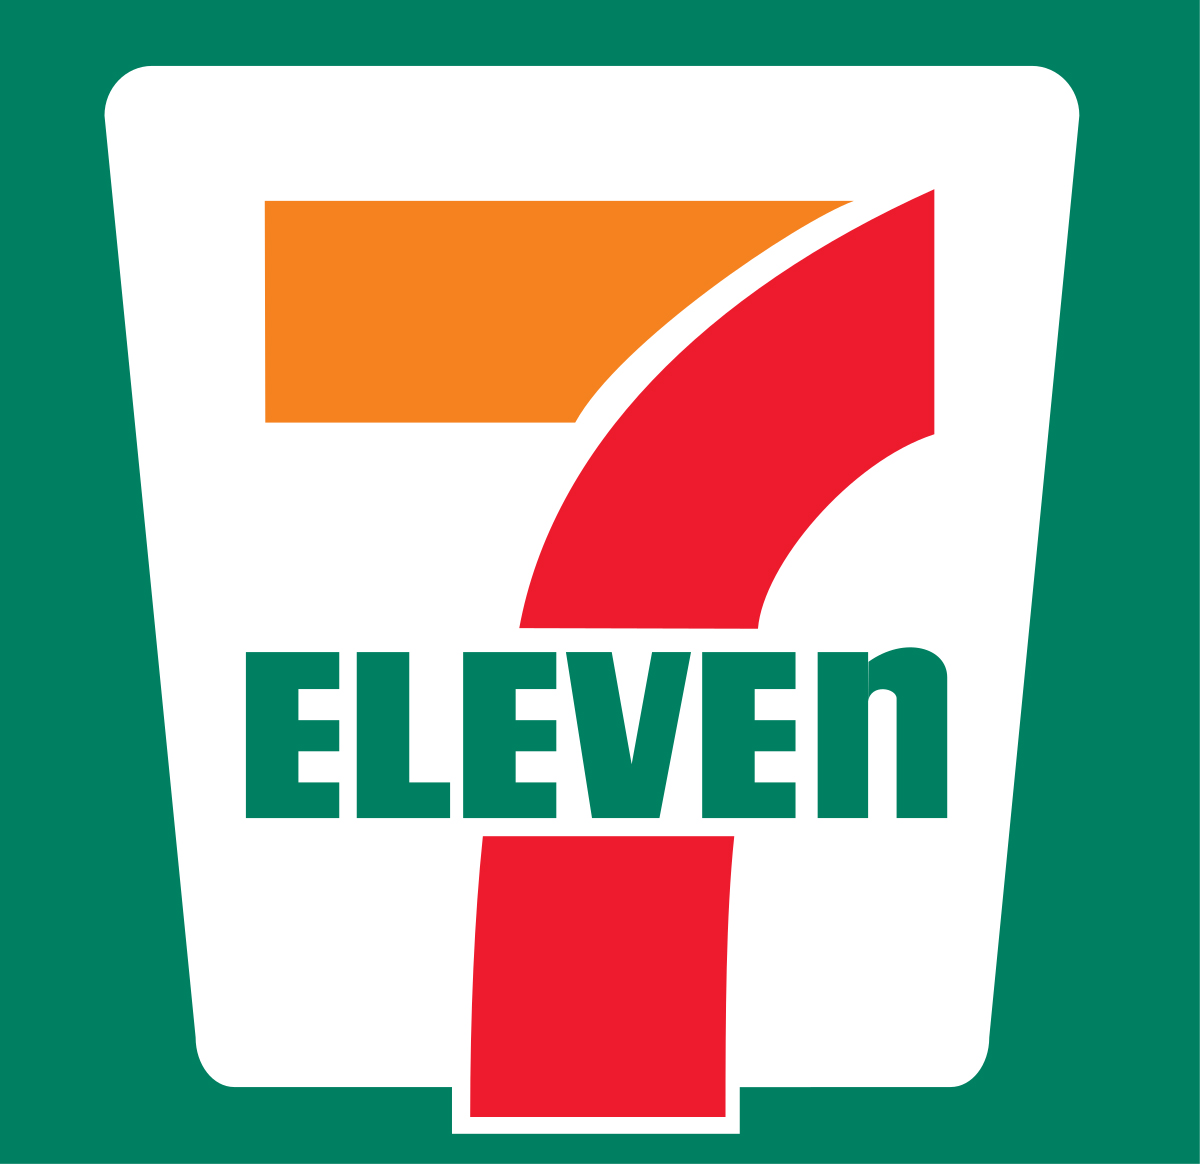 7ELEVEN for Sale